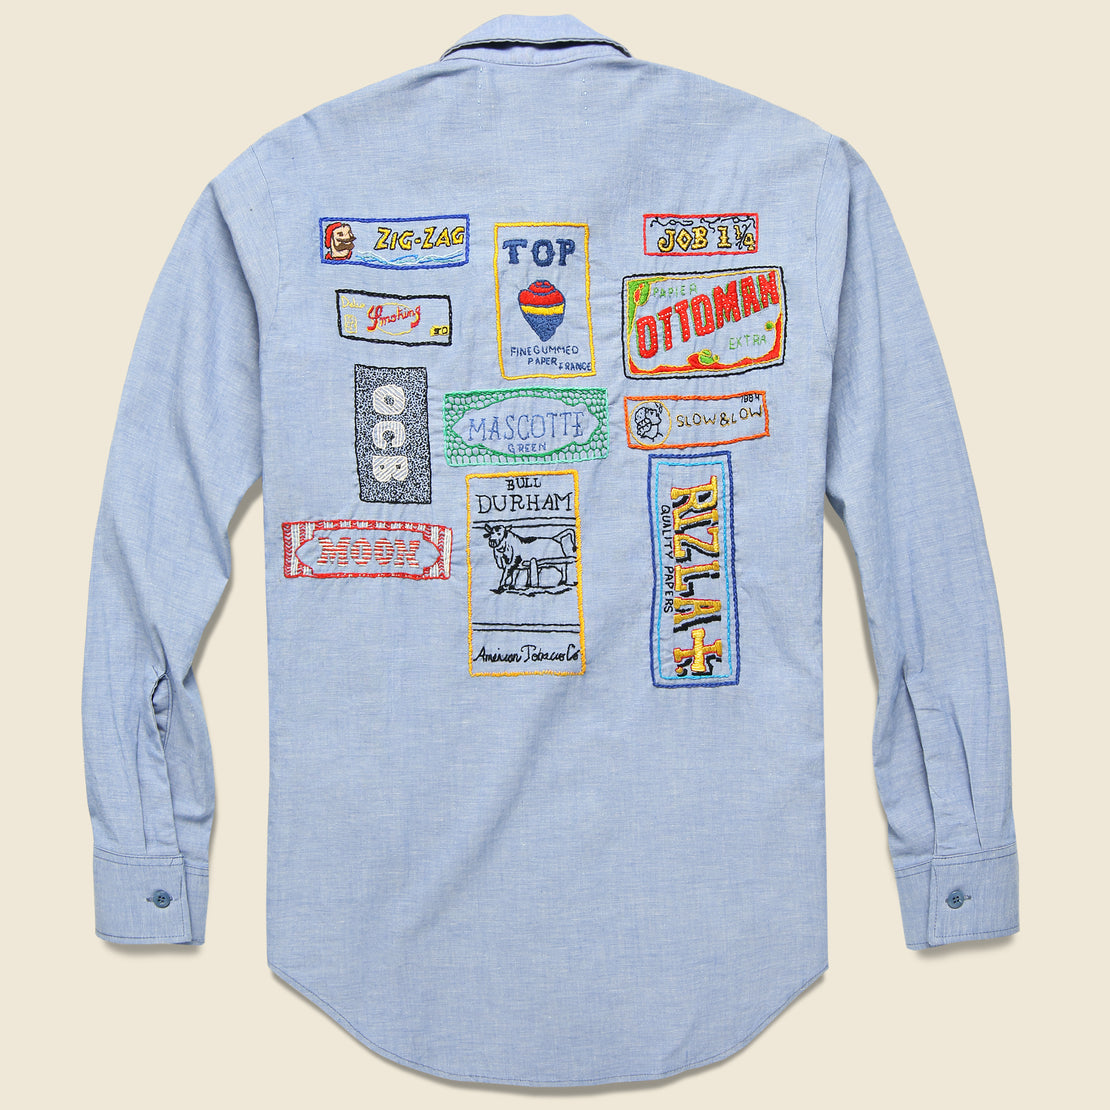 Jolly Knot Club Embroidered Chambray Shirt - Paper Planes